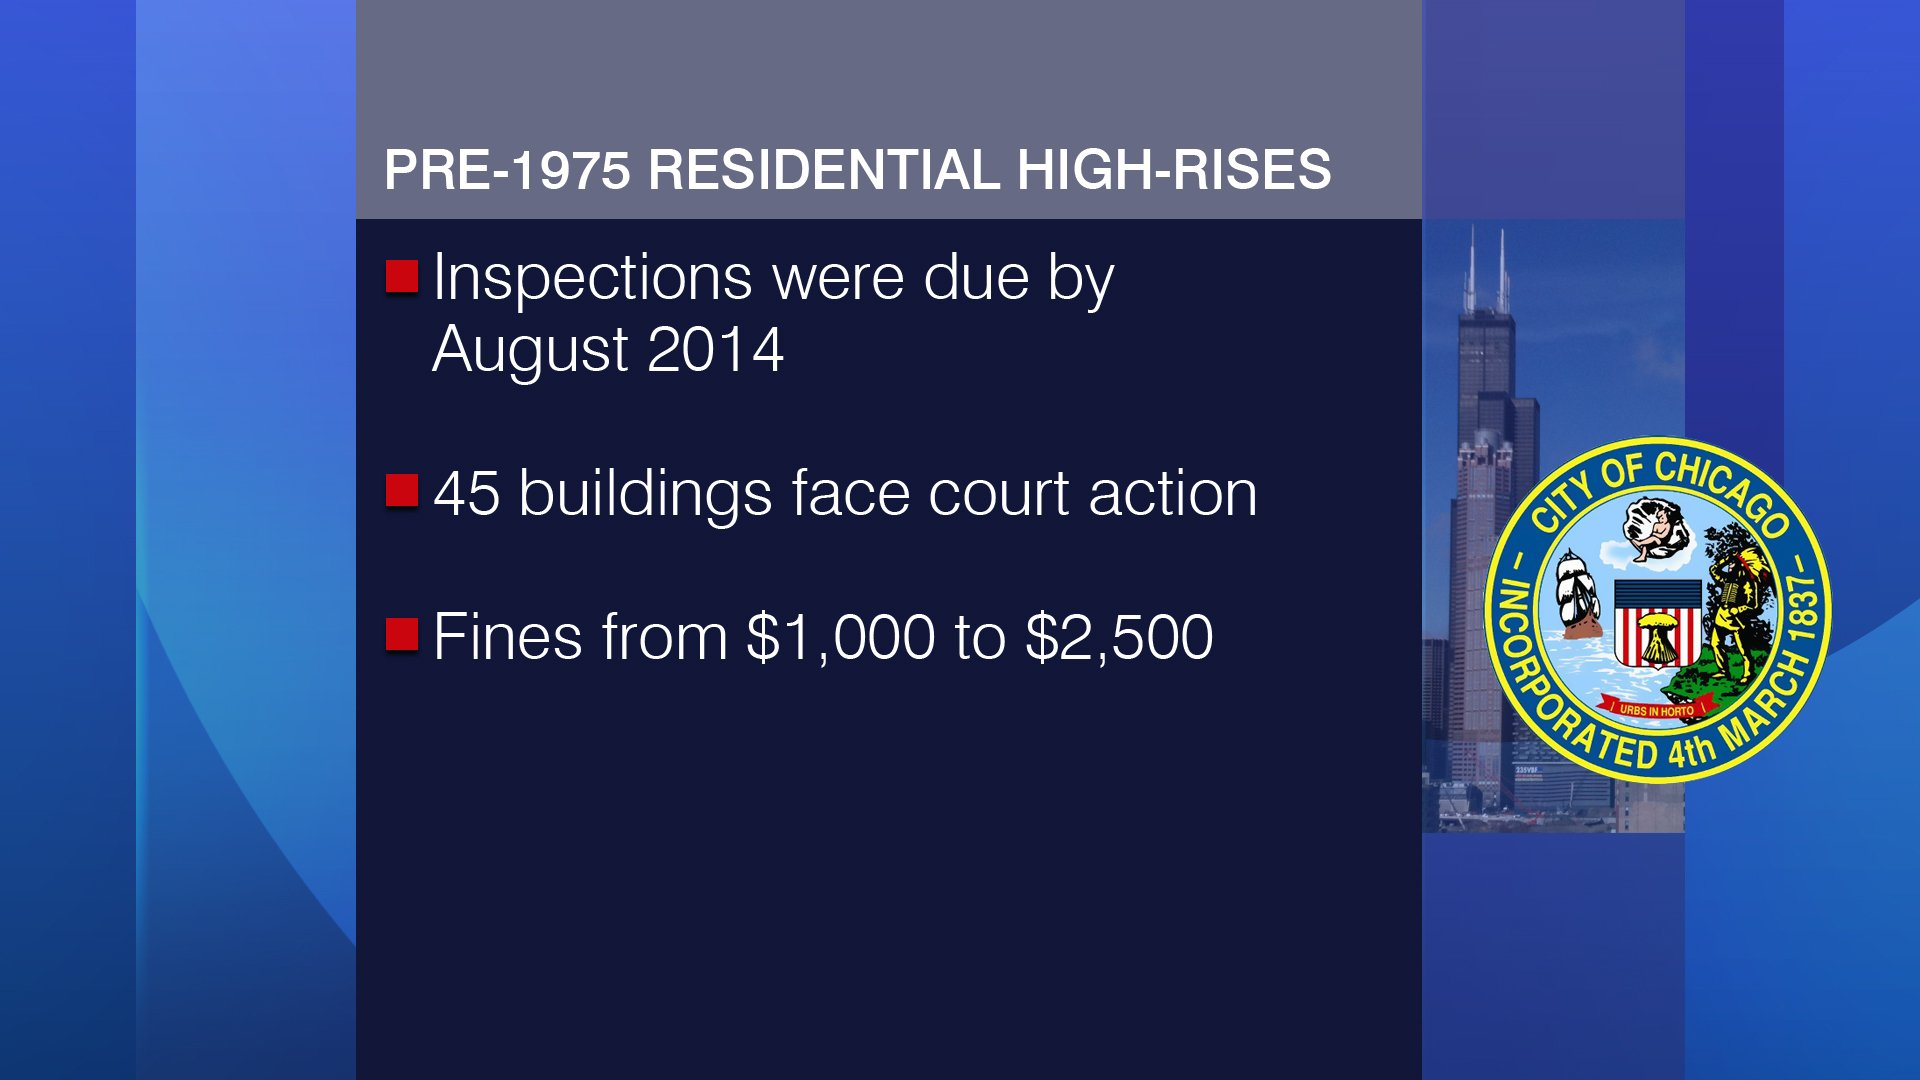 apartment and condo buildings built before 1975 the year chicago building code started mandating sprinkler systems were required to have their property